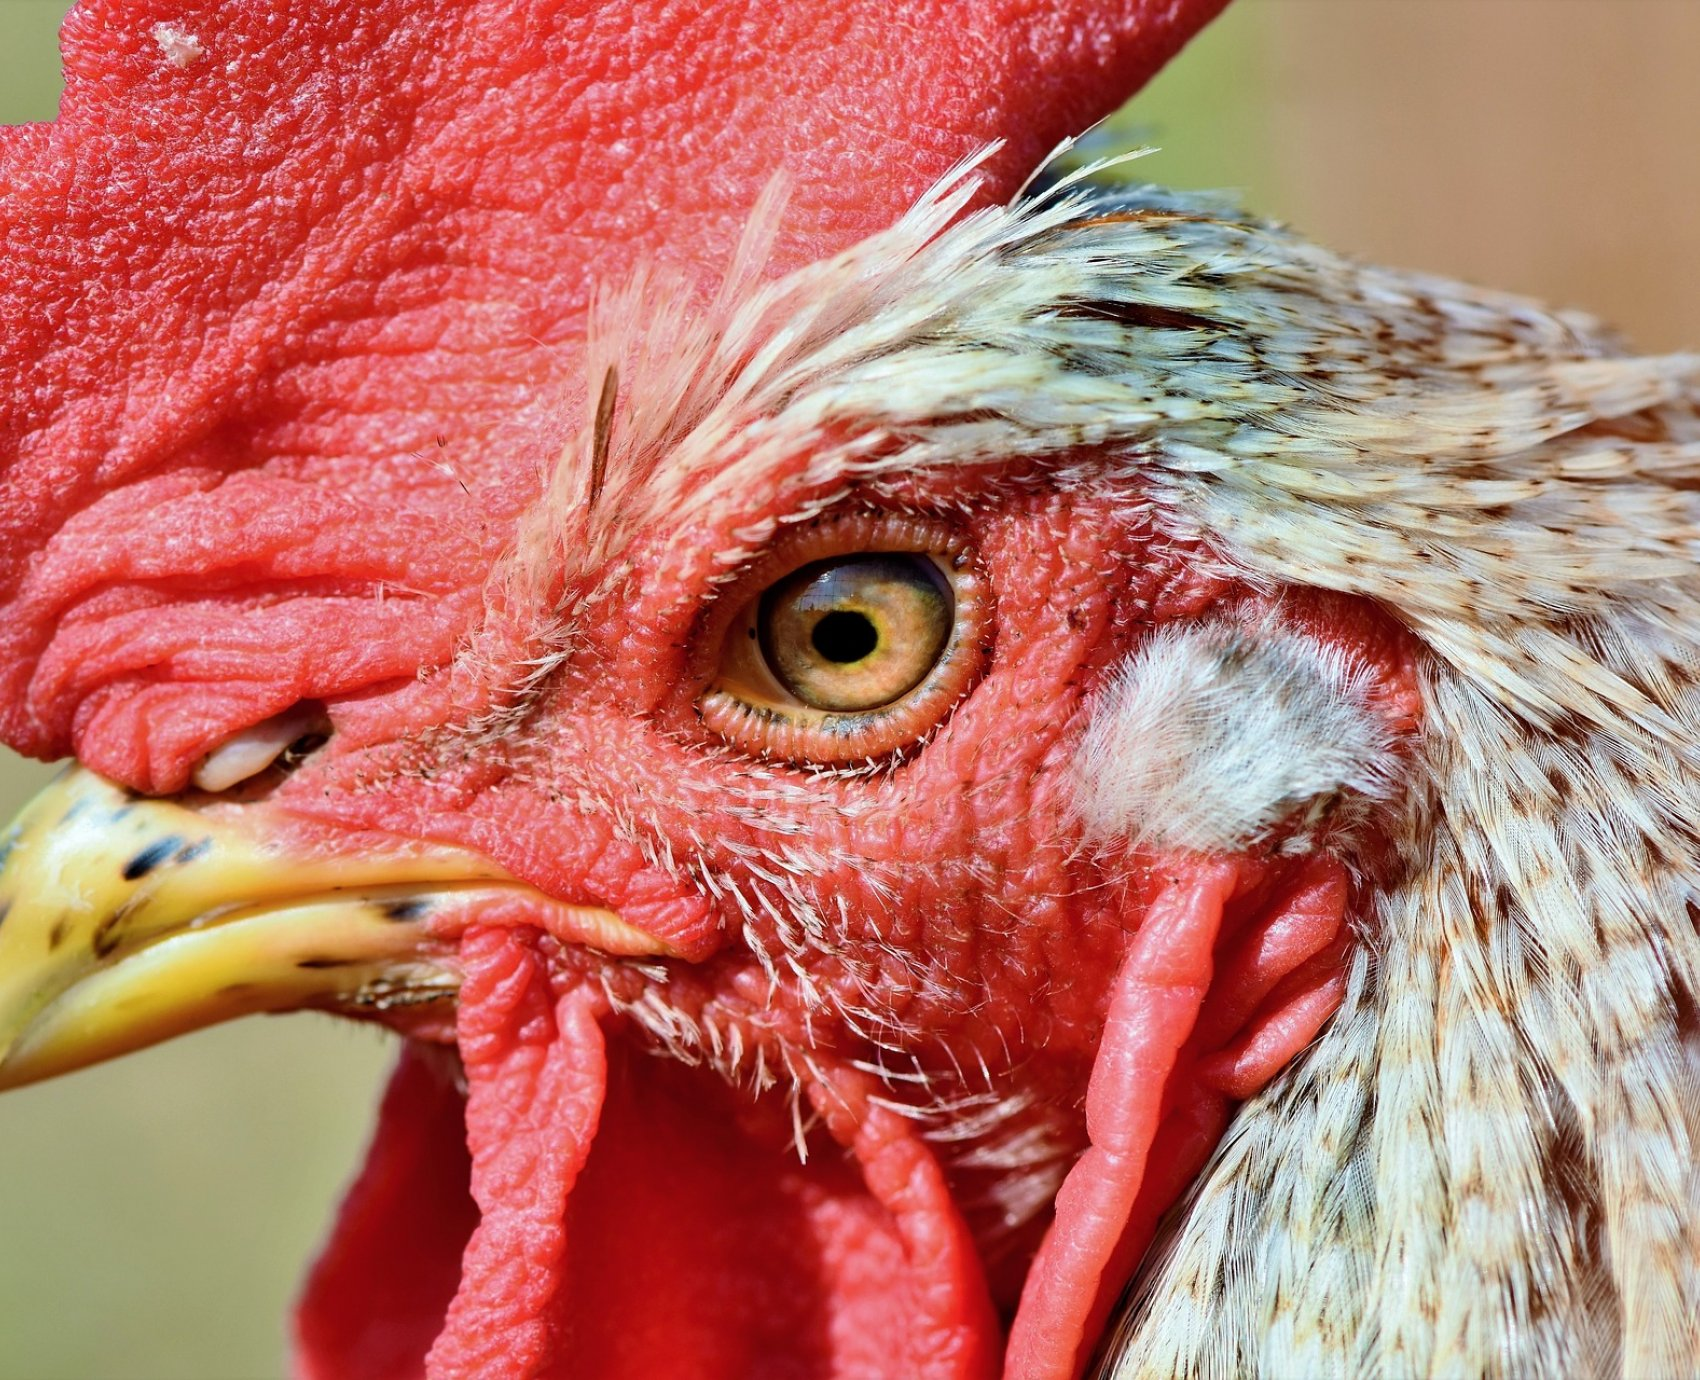 Can You Feed Human Food And Kitchen Scraps To Chickens?